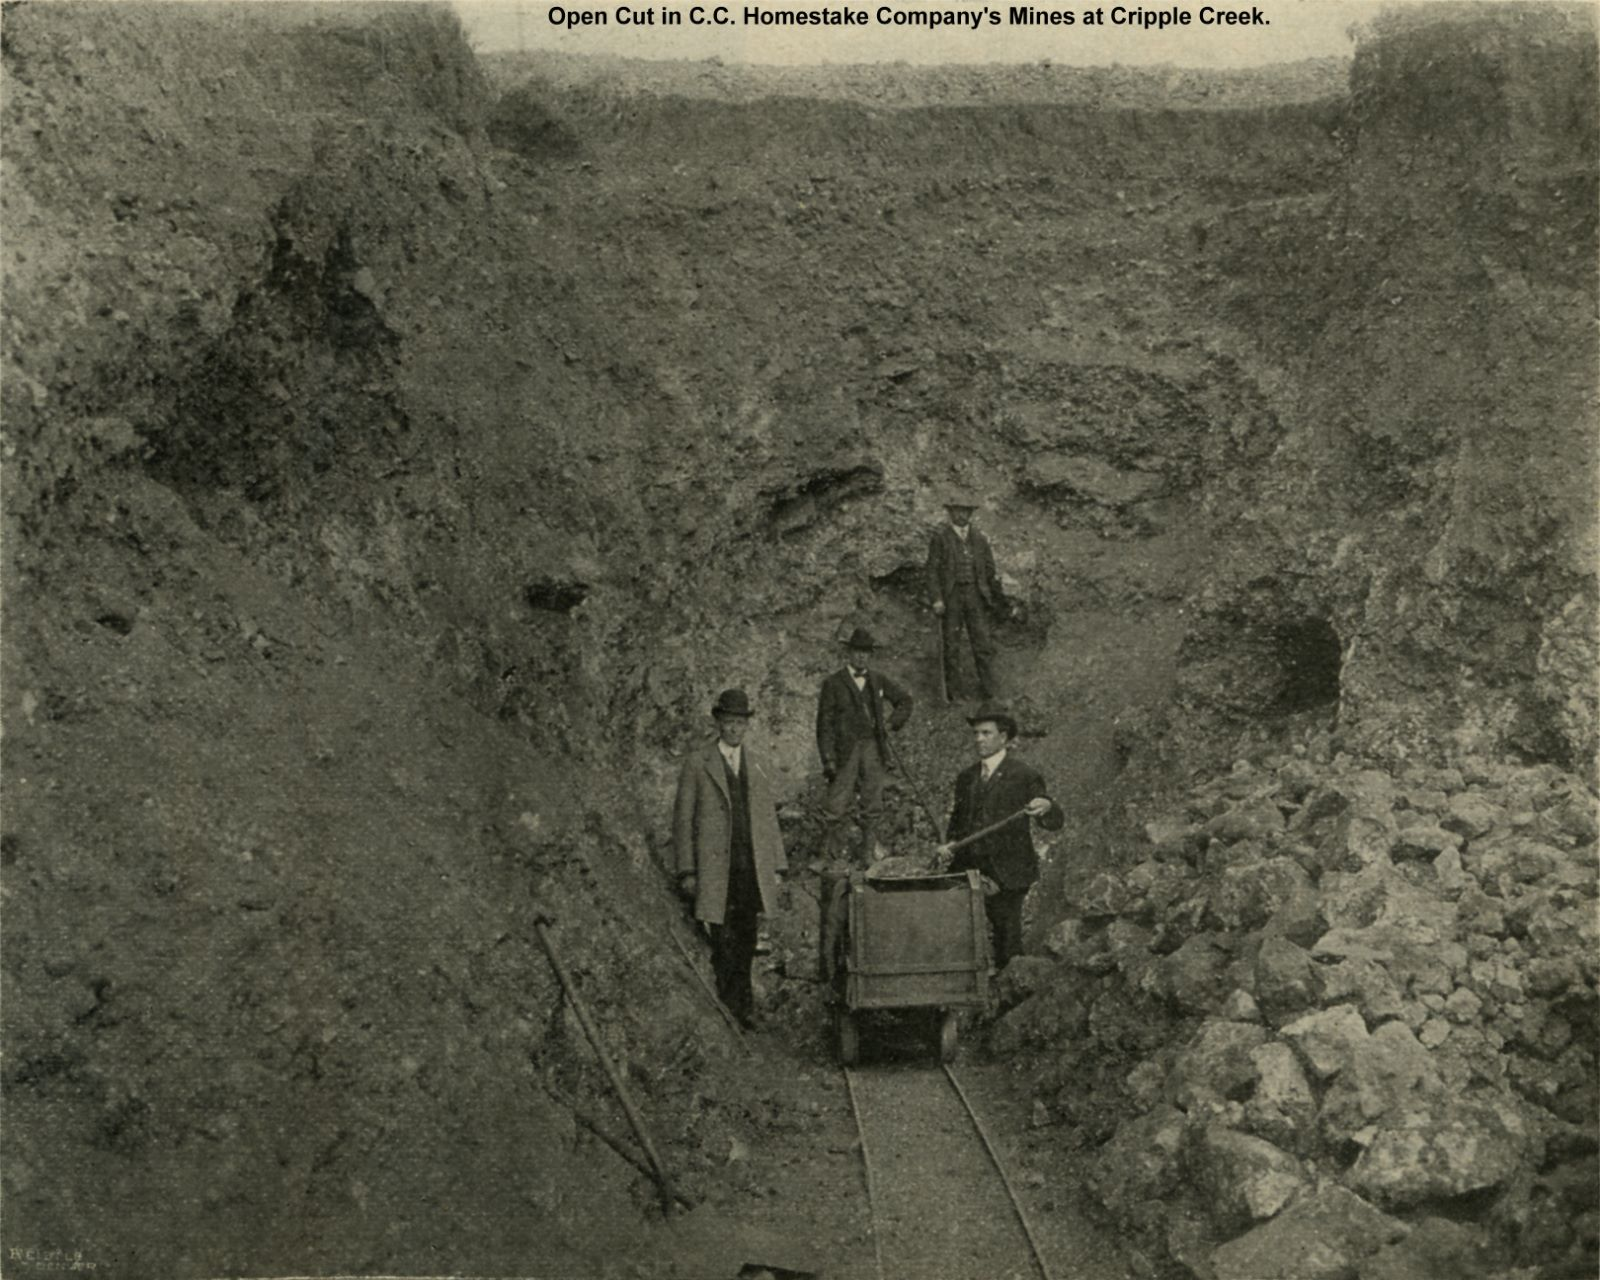 Open Cut in C. C. Homestake Company's Mines at Cripple Creek.